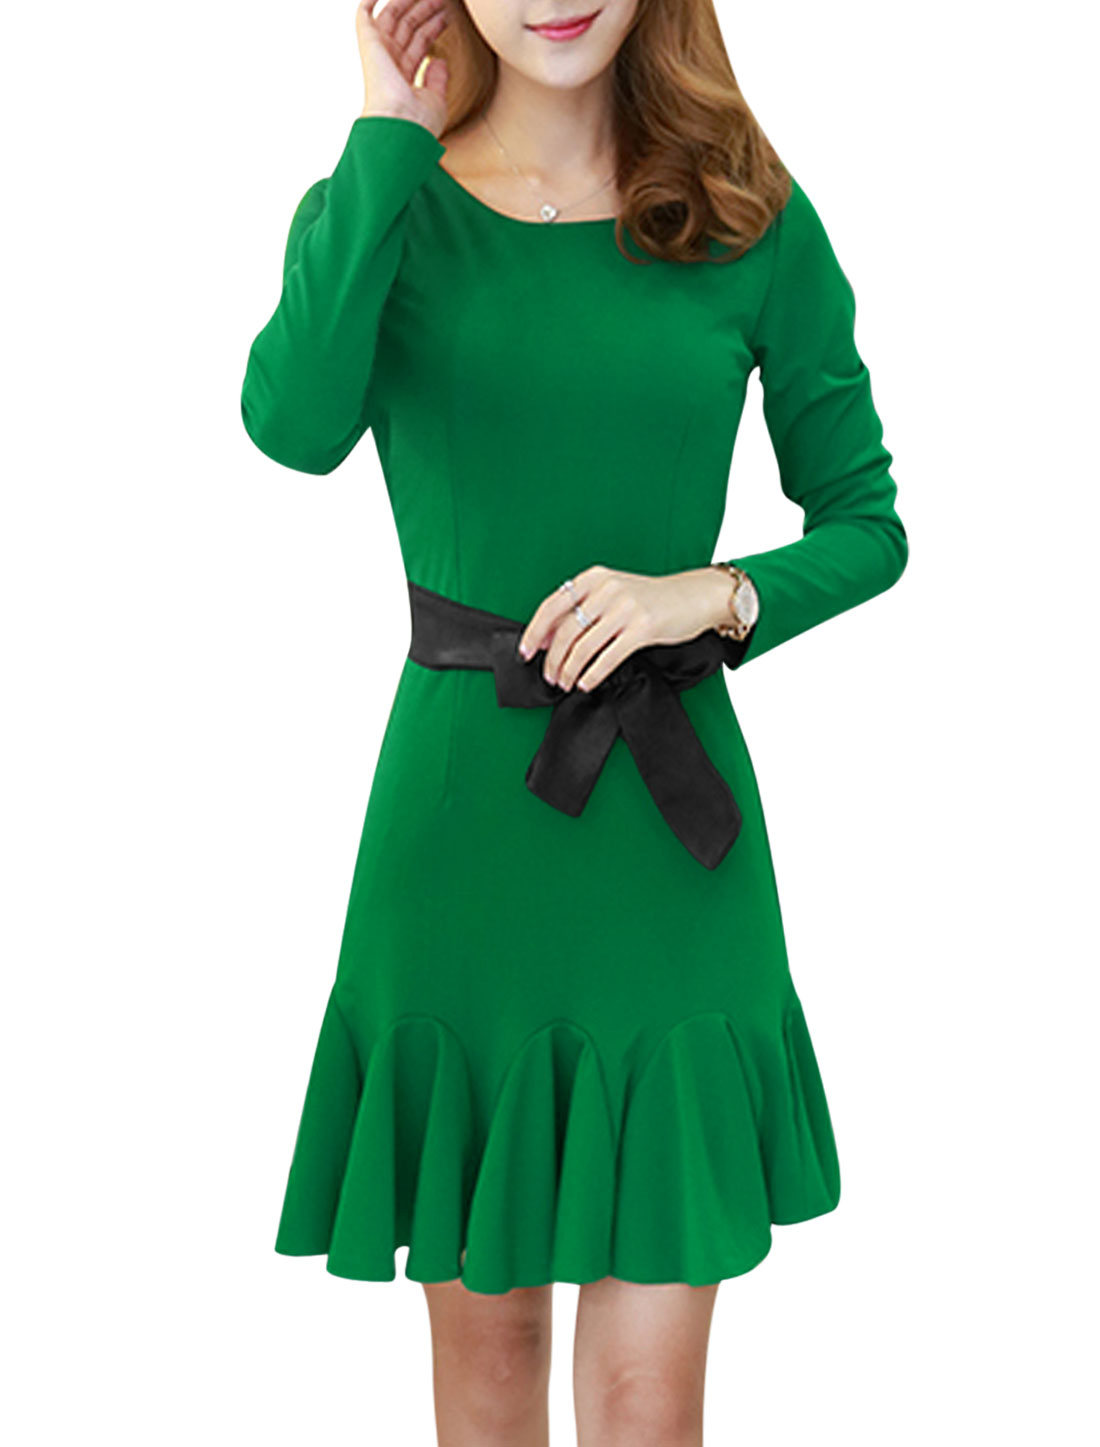 Women Round Neck Flouncing Hem Sheath Dress w Belt Green S